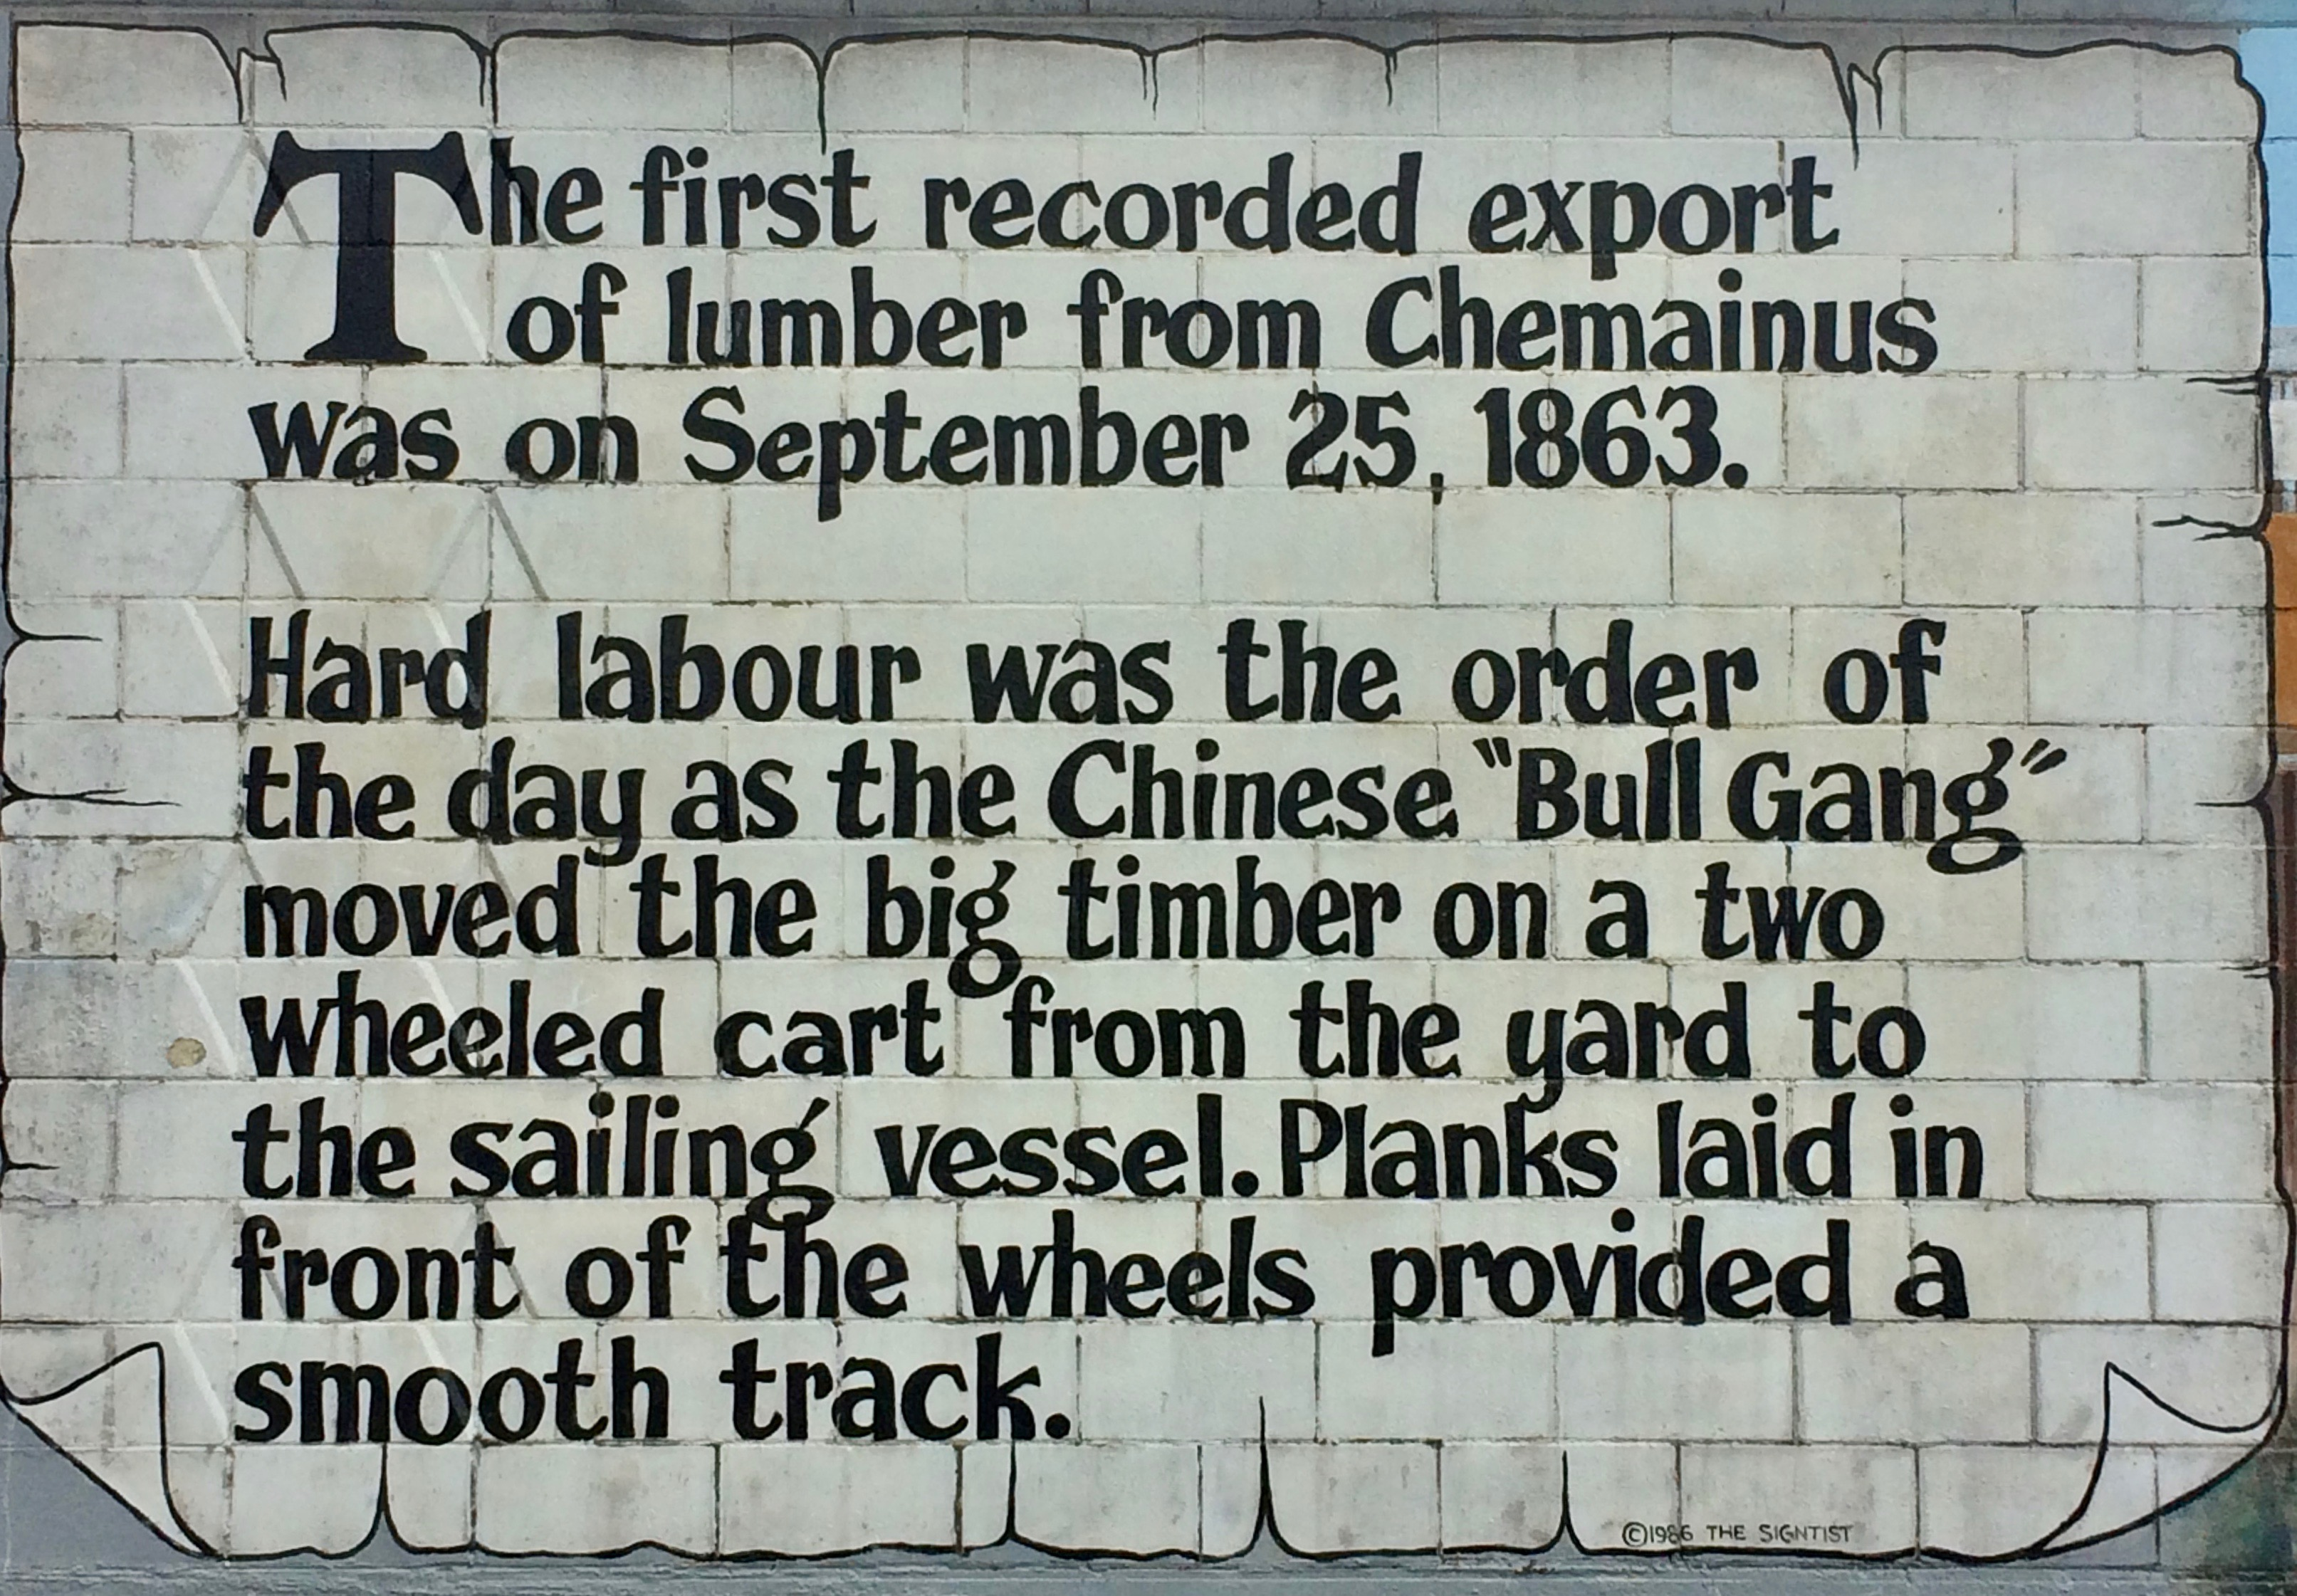 Signage for Chinese Bull Gang